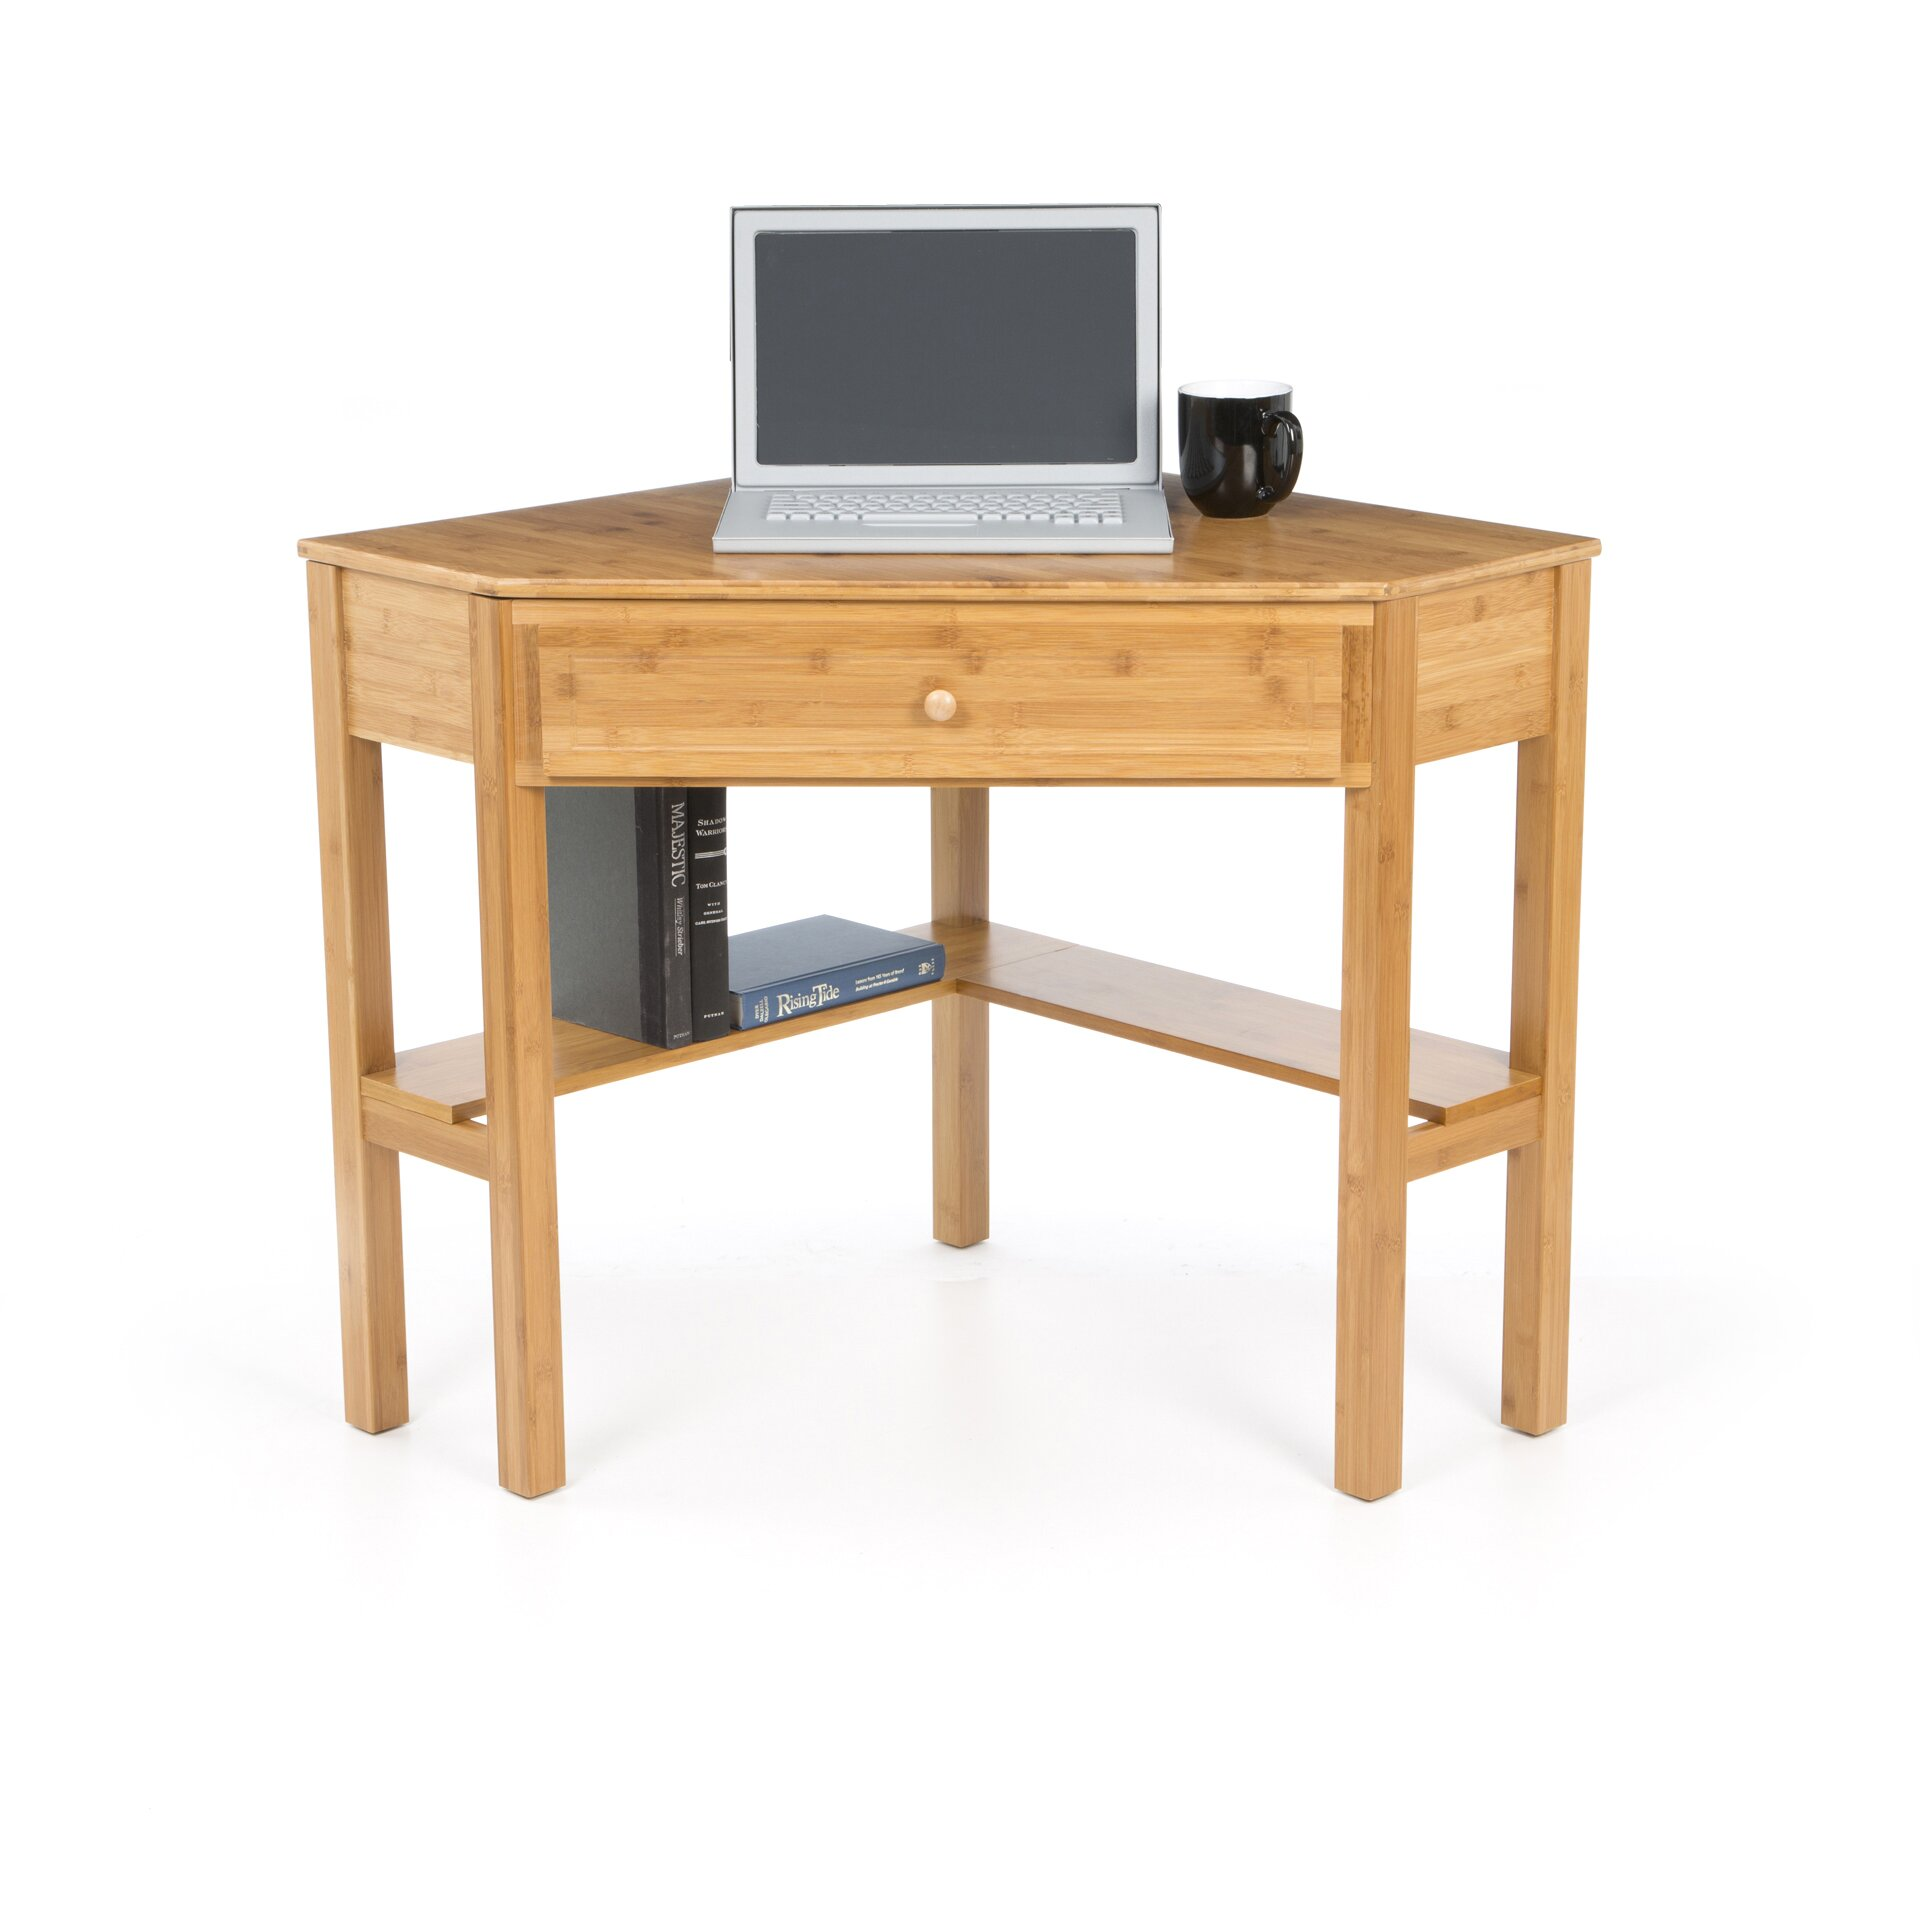 corner writing desks Work smart find the perfect desk for your home office or business from lowe's choose from a variety of materials, finishes, and styles including computer, corner, and hutch desks.